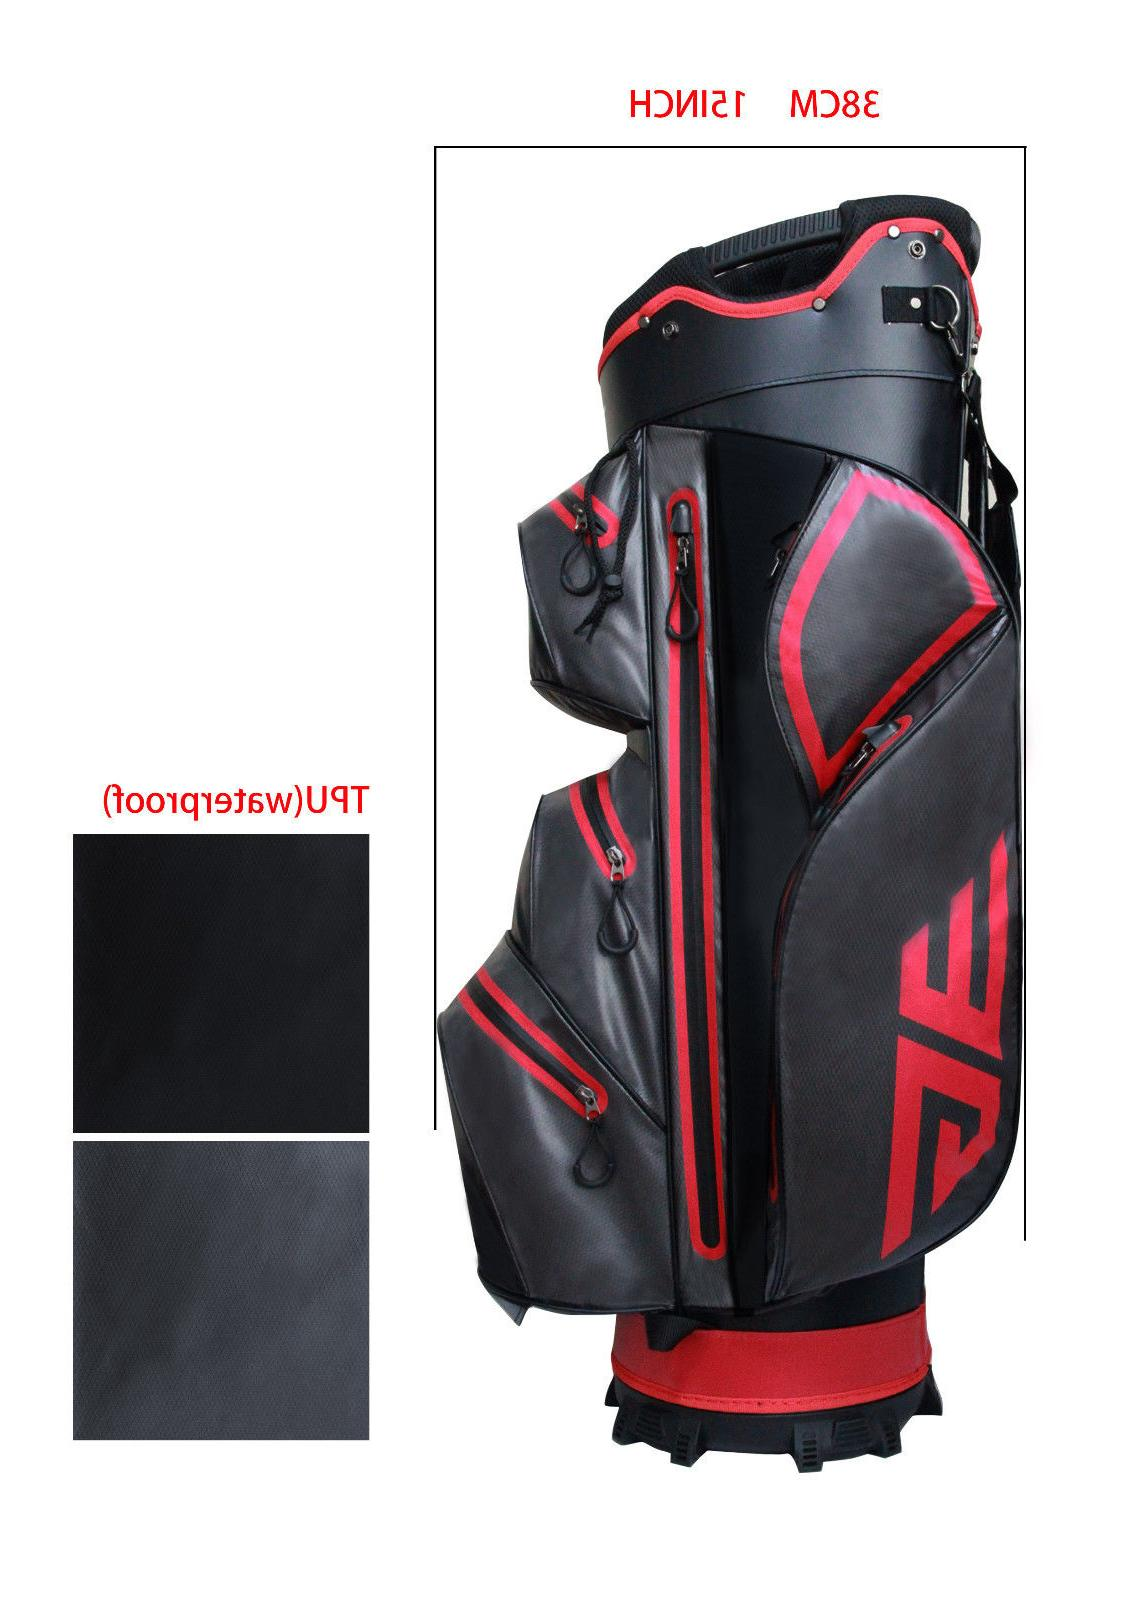 Eagole 5 Lbs, Pockets LENGTH PROOF Golf